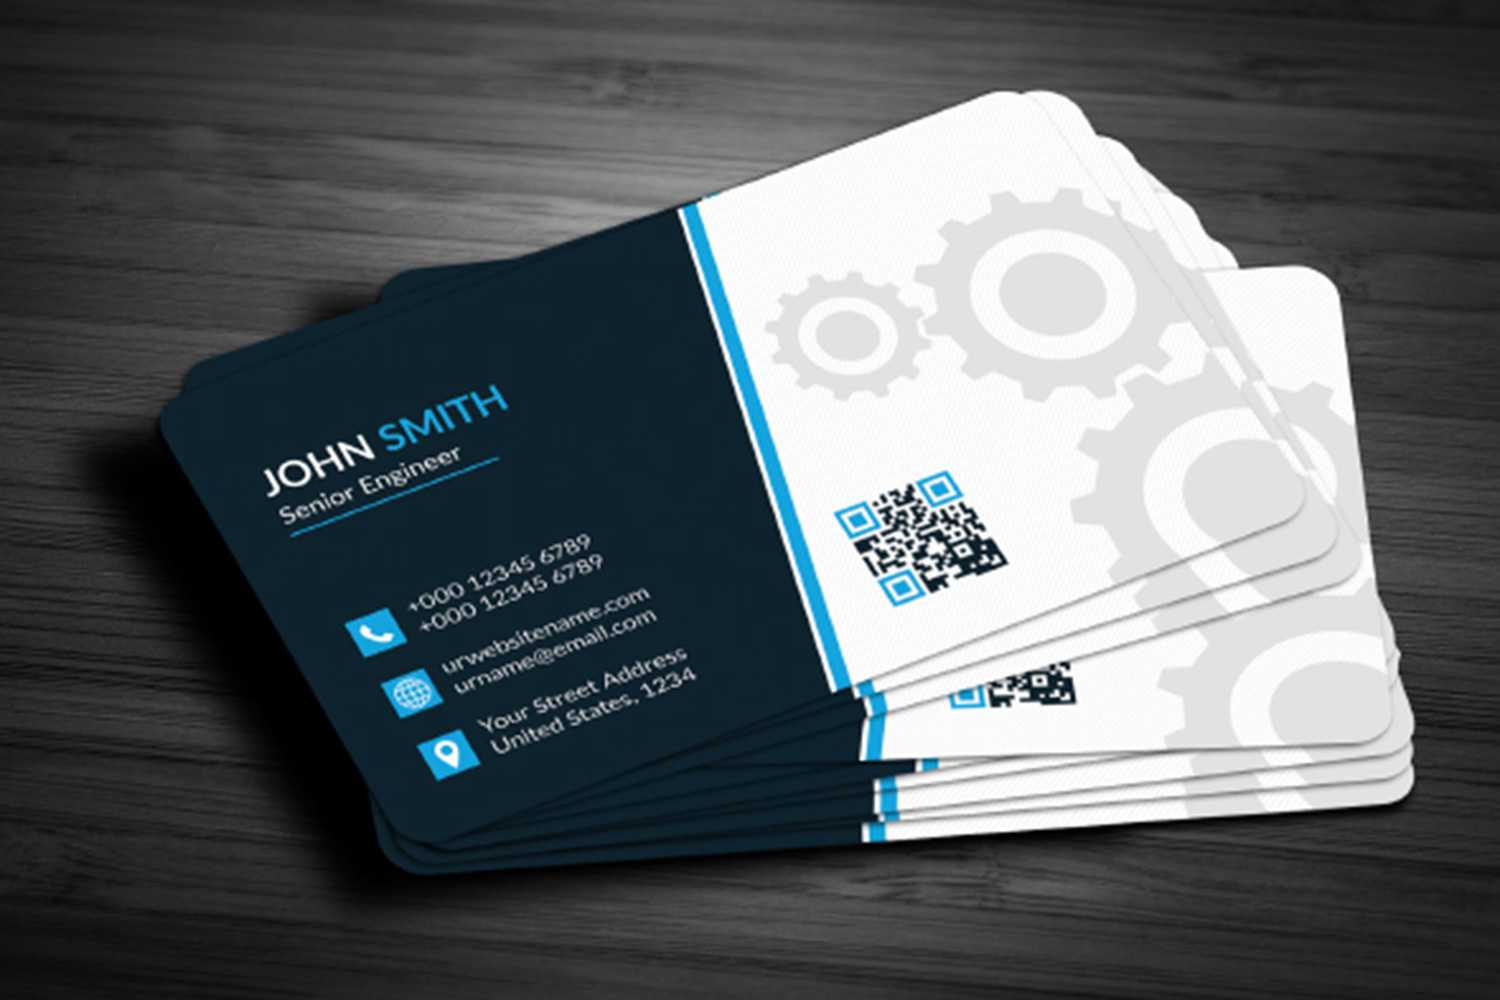 009 Business Card Template Free Download Ideas Archaicawful With Unique Business Card Templates Free